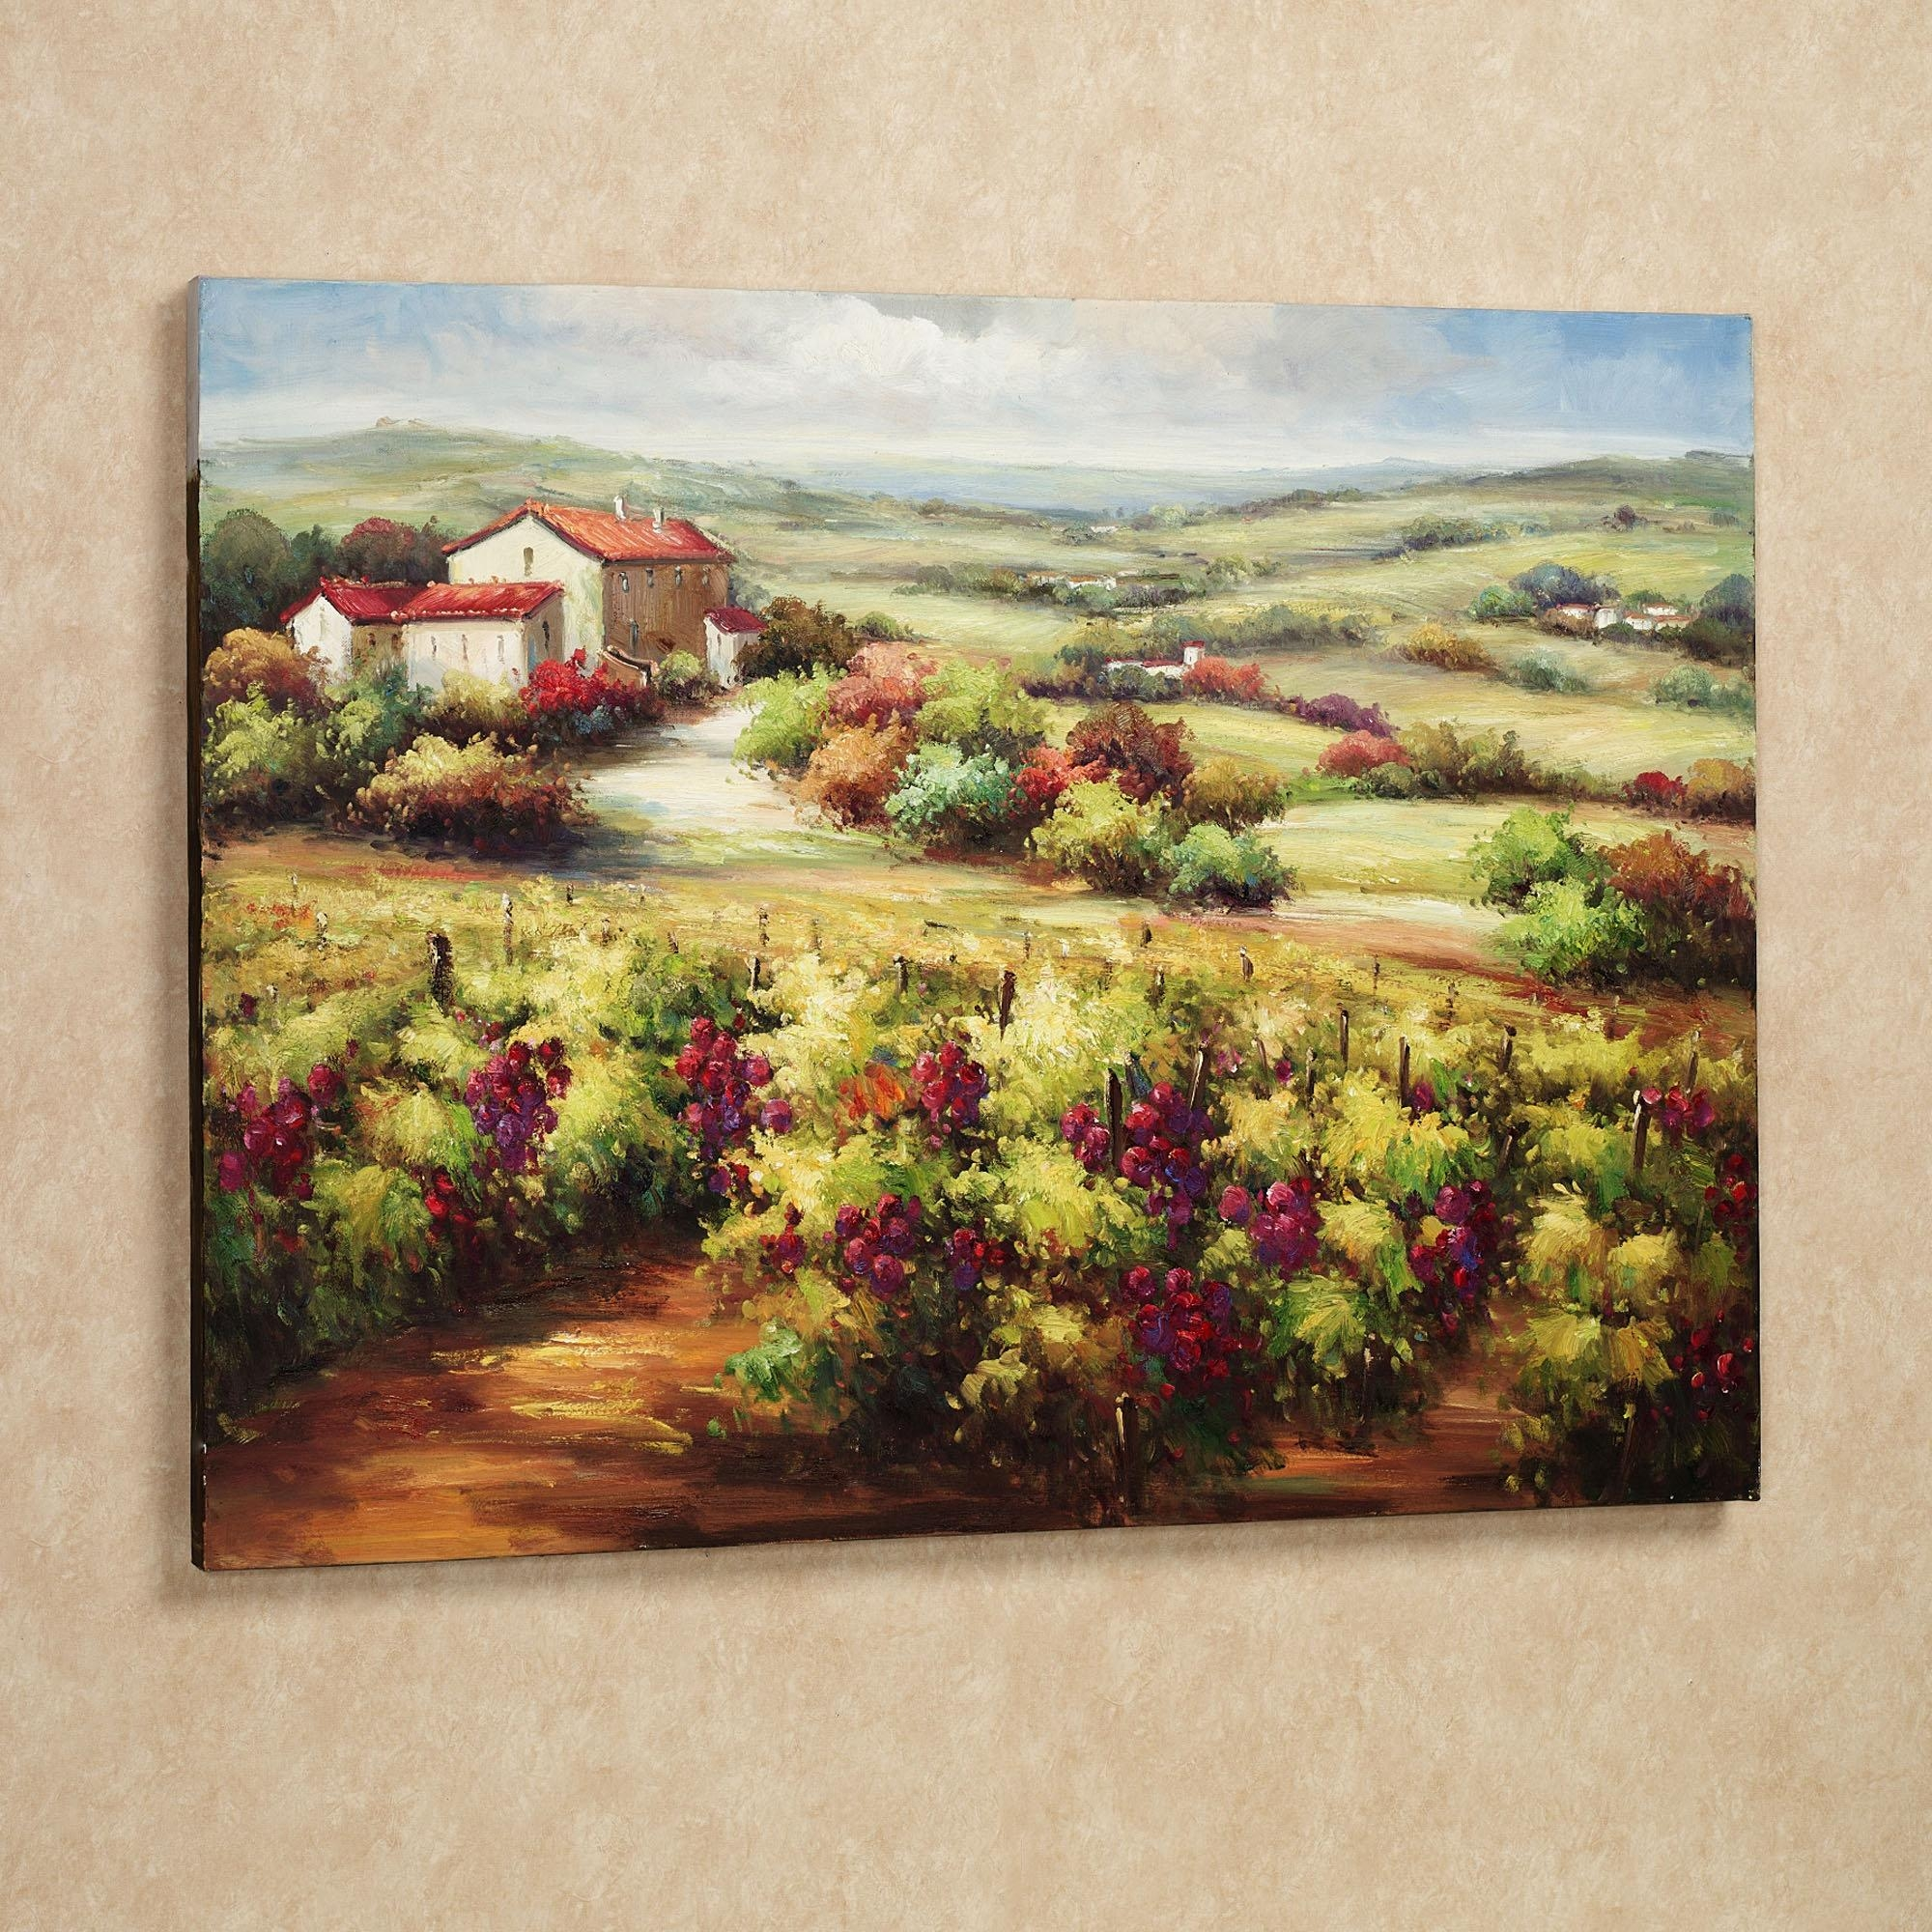 Wall Art Ideas: Vineyard Wall Art (Explore #3 of 20 Photos)